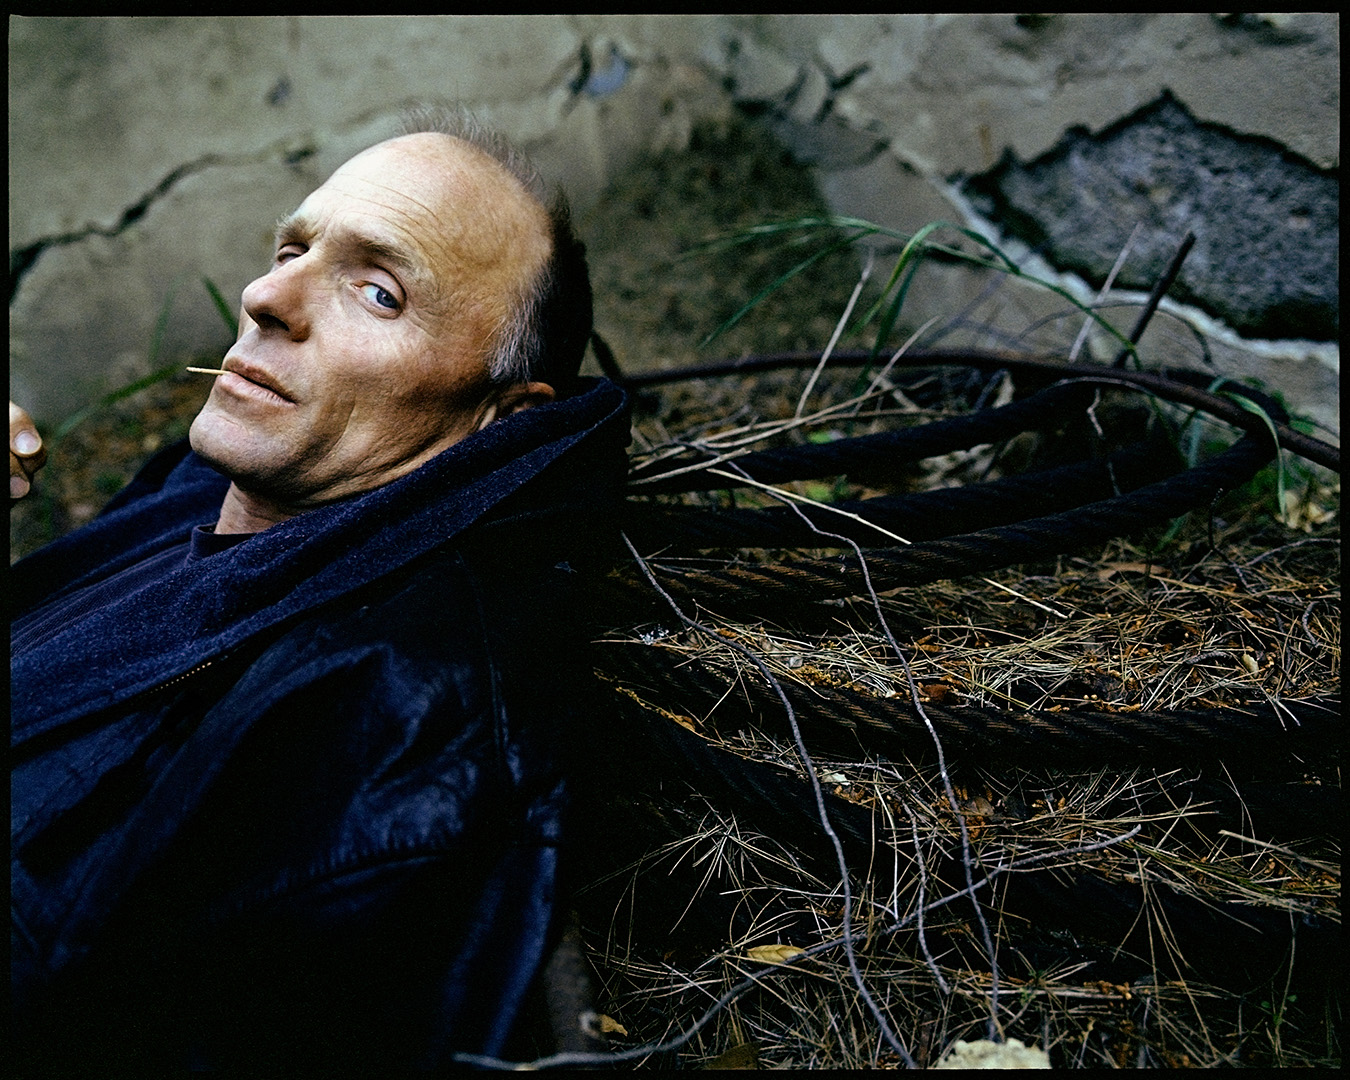 Ed Harris photographed by Patrik Andersson in an Homage to the movie Stalker by Andrei Tarkovsky